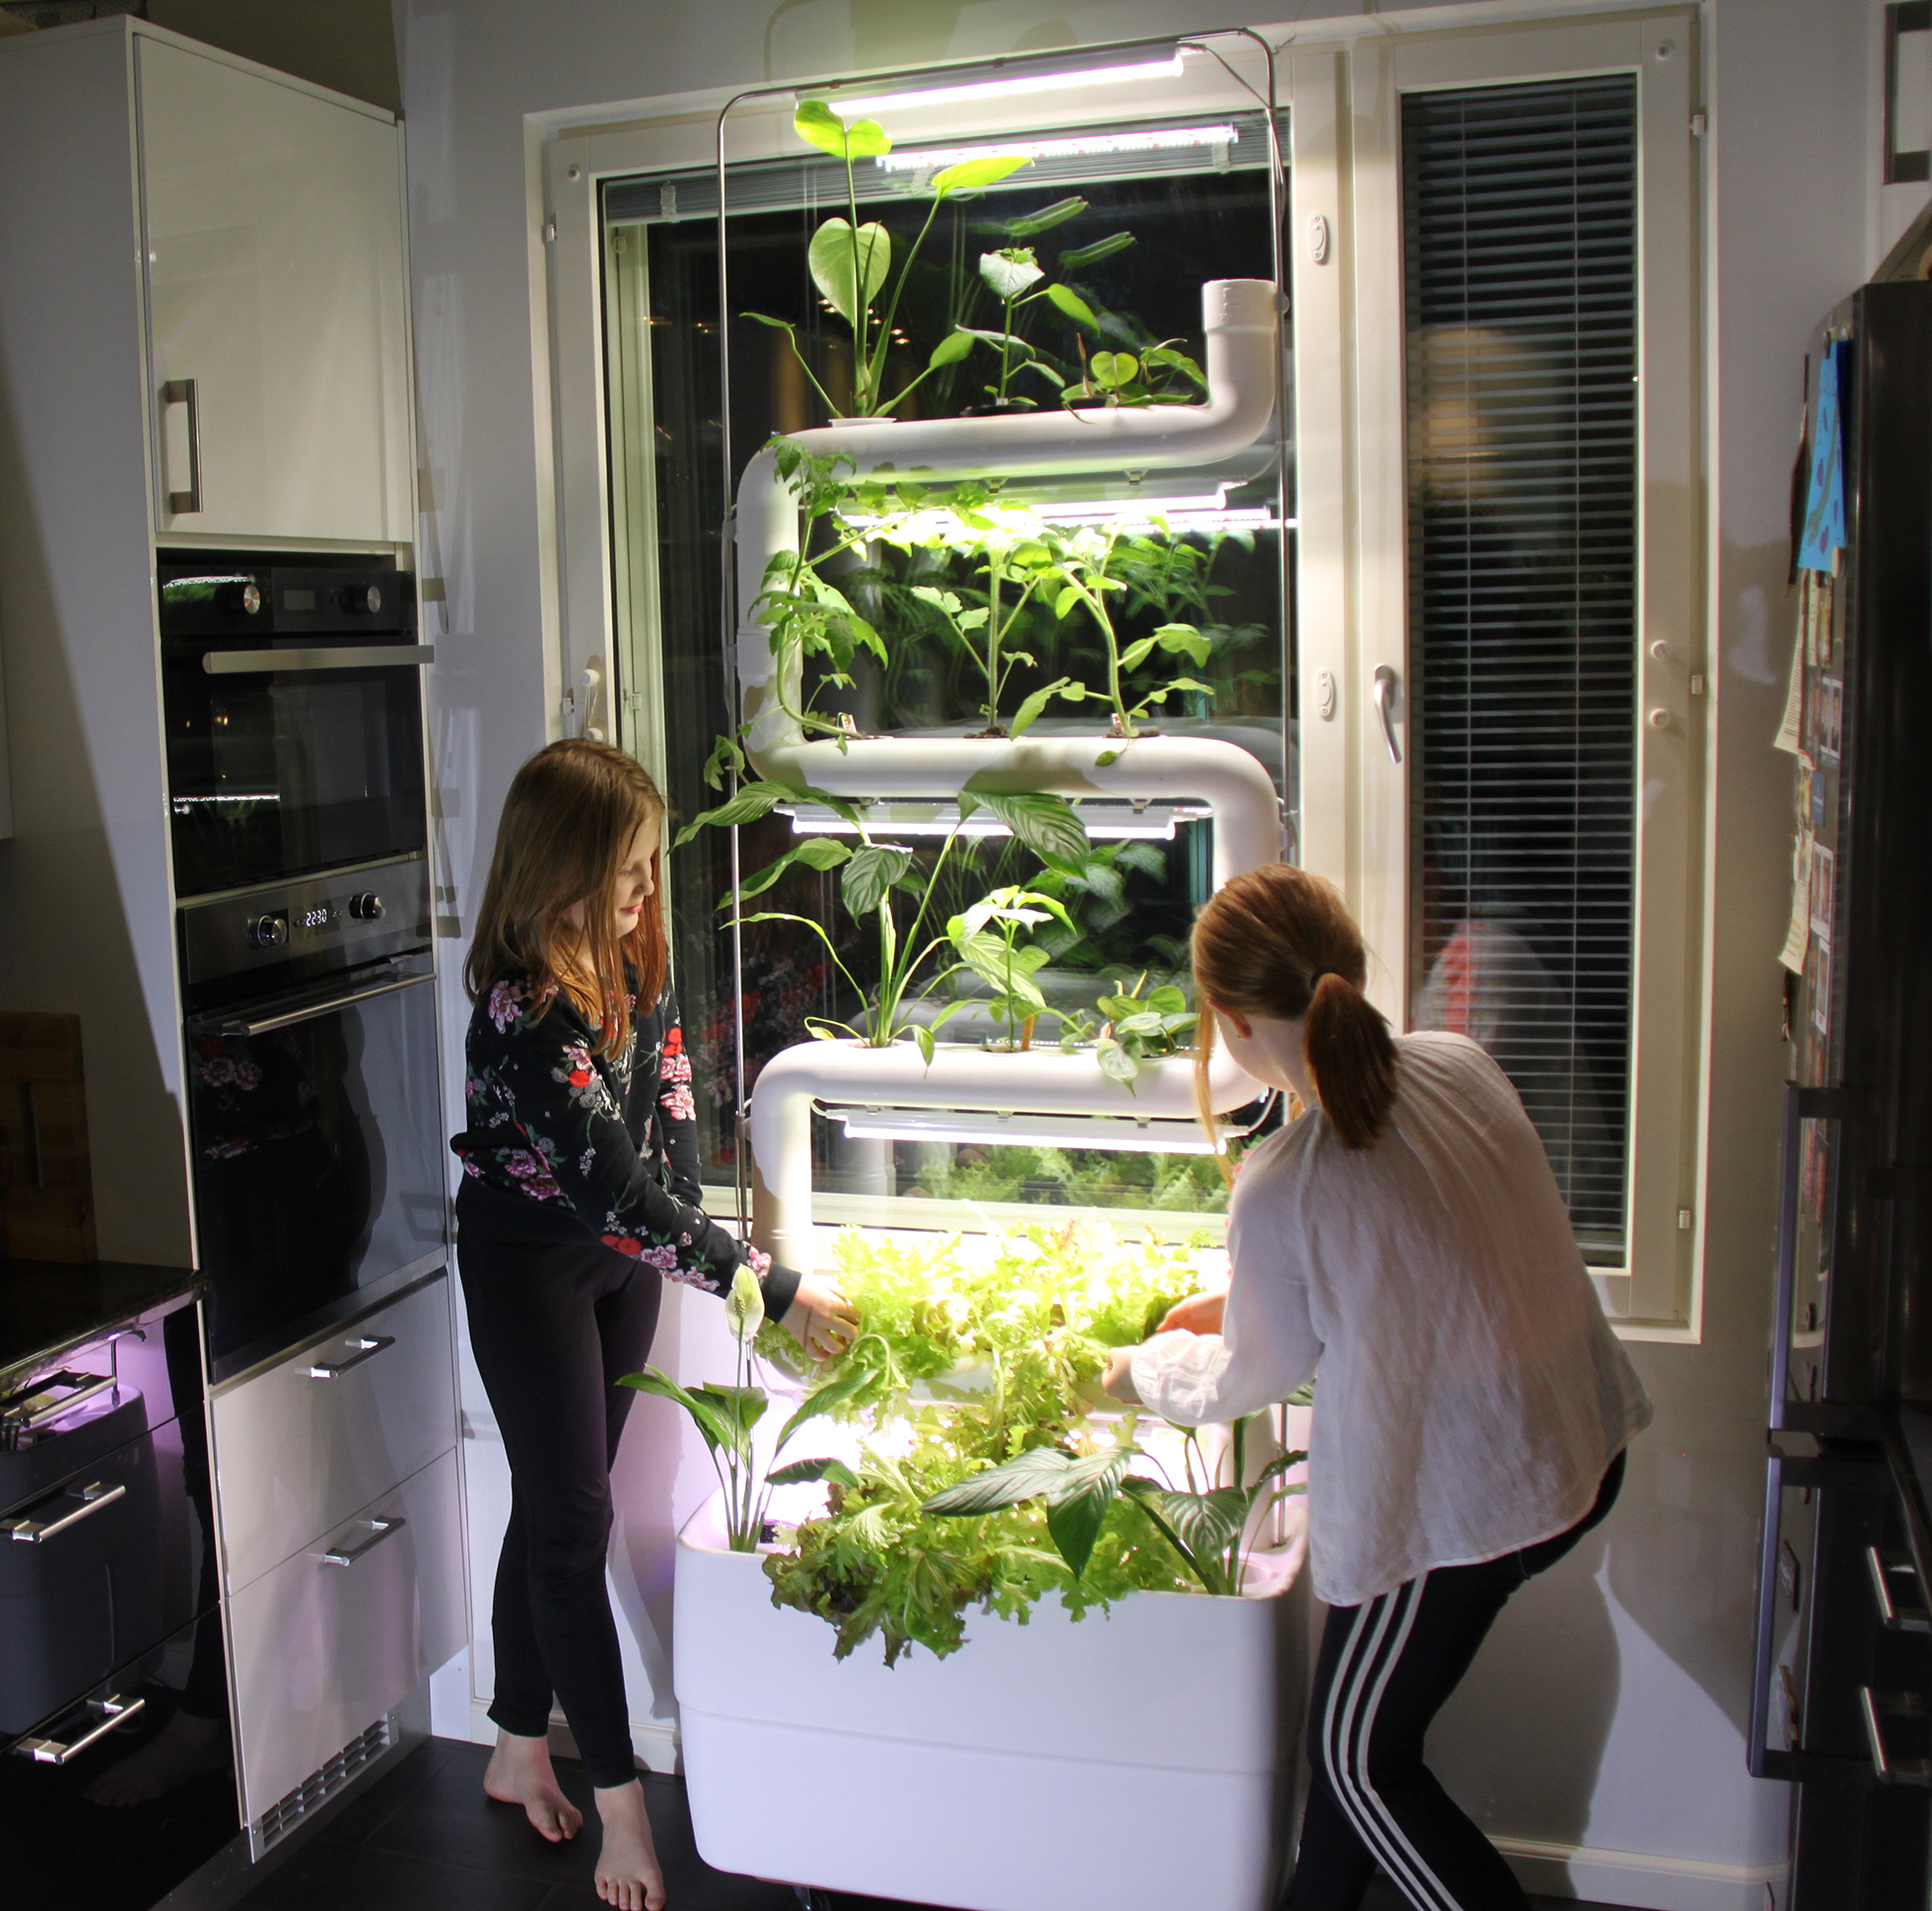 Two children tending an indoor smart garden